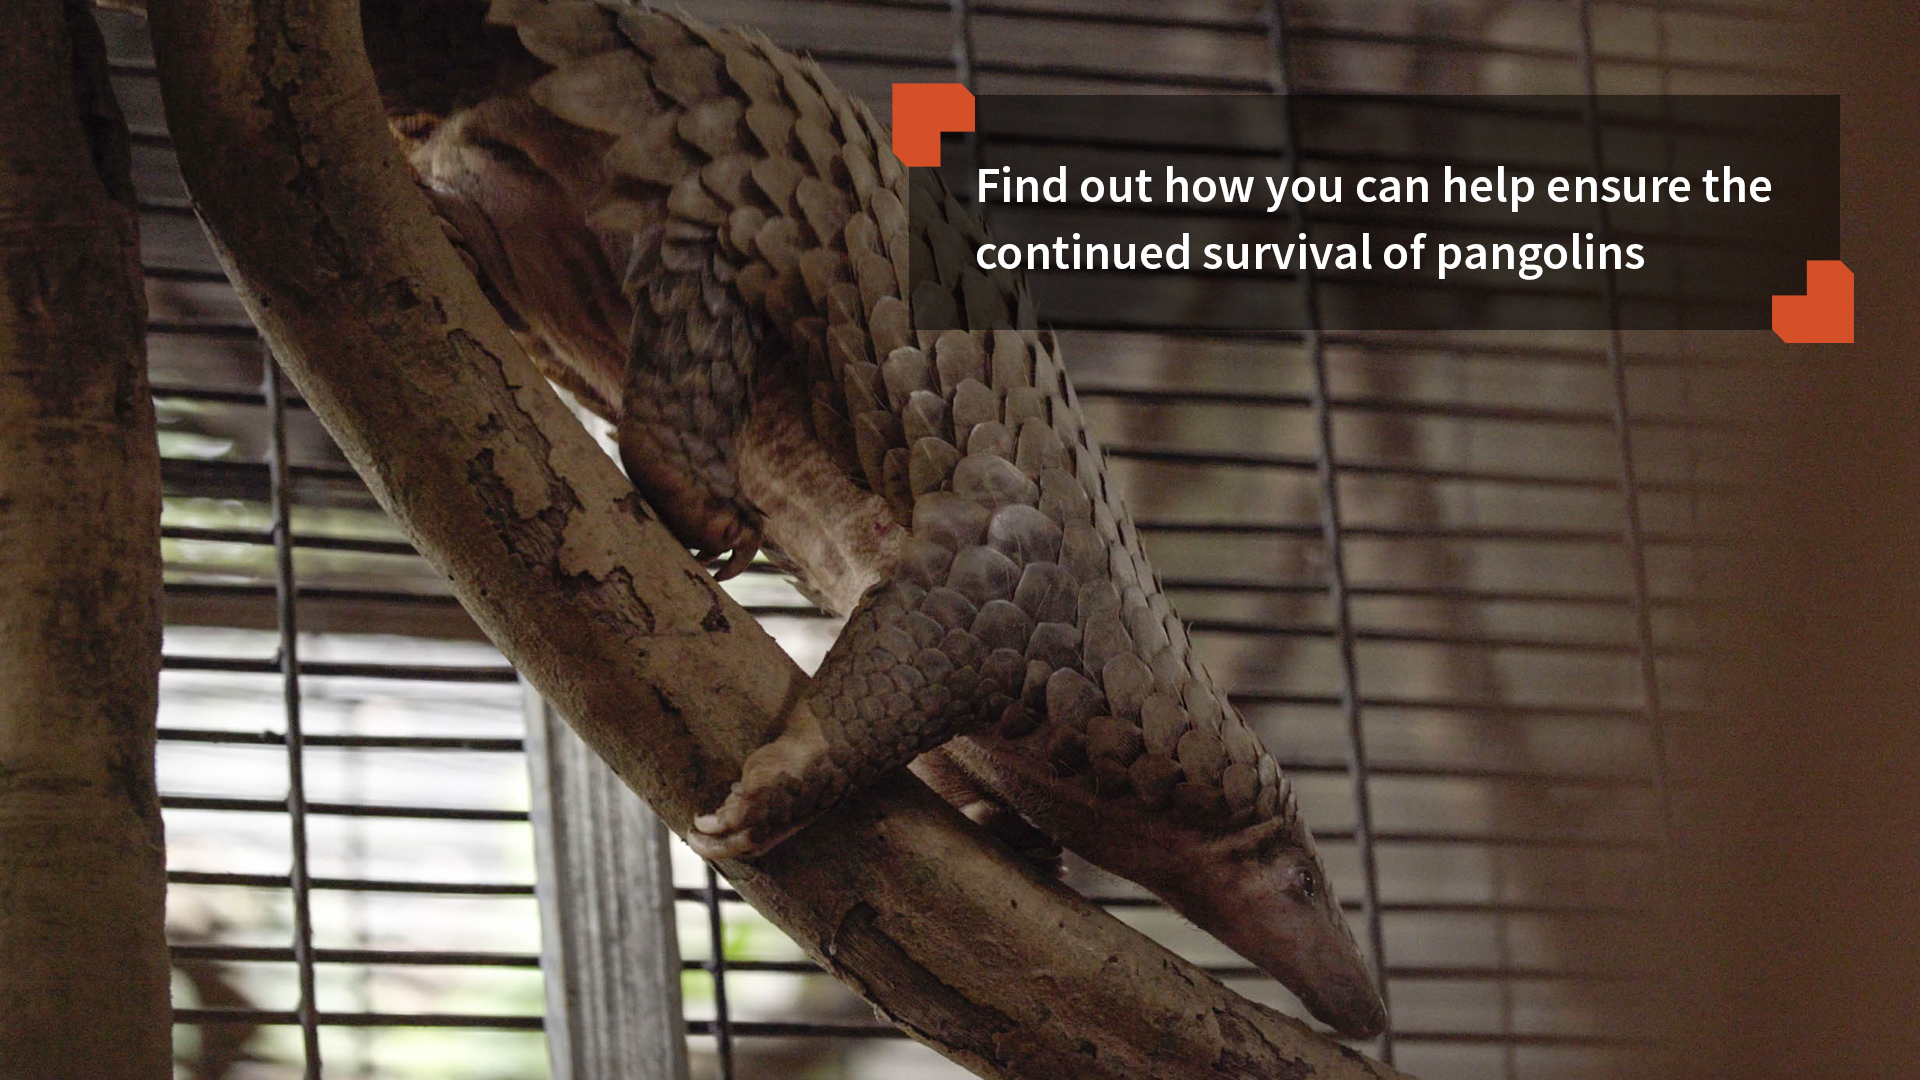 Find out how you can help ensure the continued survival of pangolins